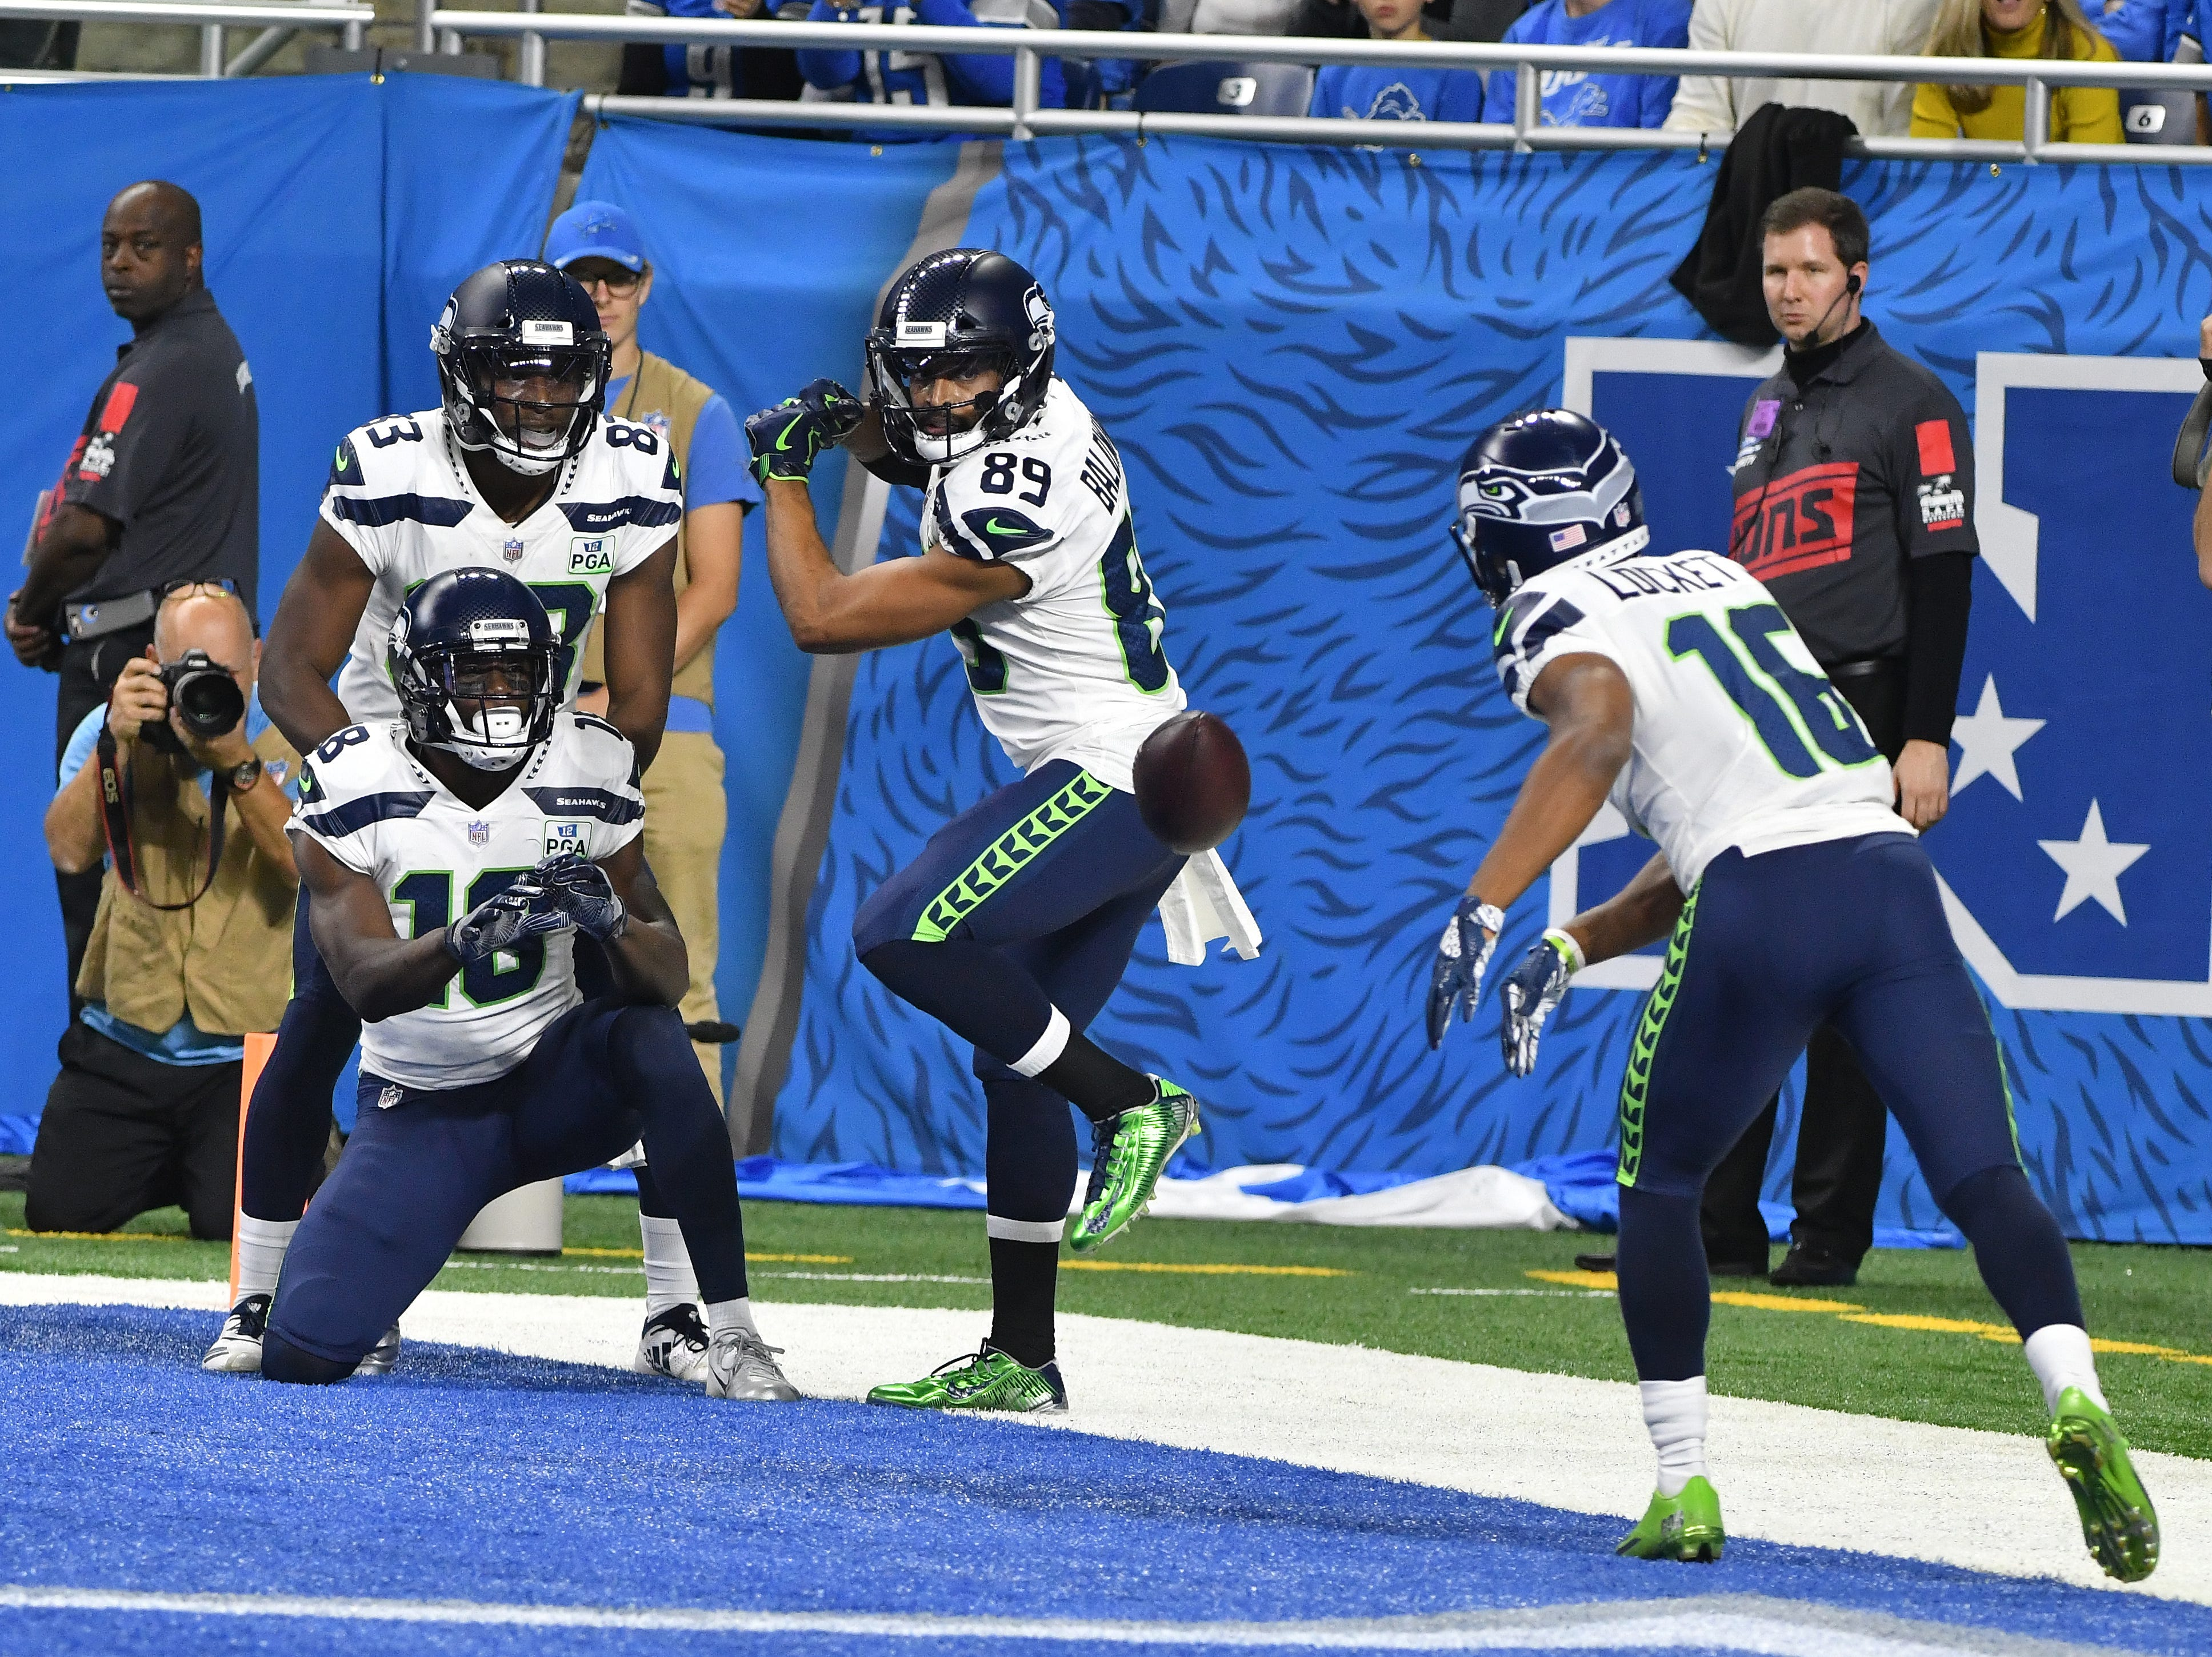 After Seahawks' Tyler Lockett's touchdown, Seattle's celebration was a tribute to the sport of baseball with Lockett pitching, hitting the batter, Doug Baldwin, with the football, who then charged the pitcher with Lockett taking him down with one punch.